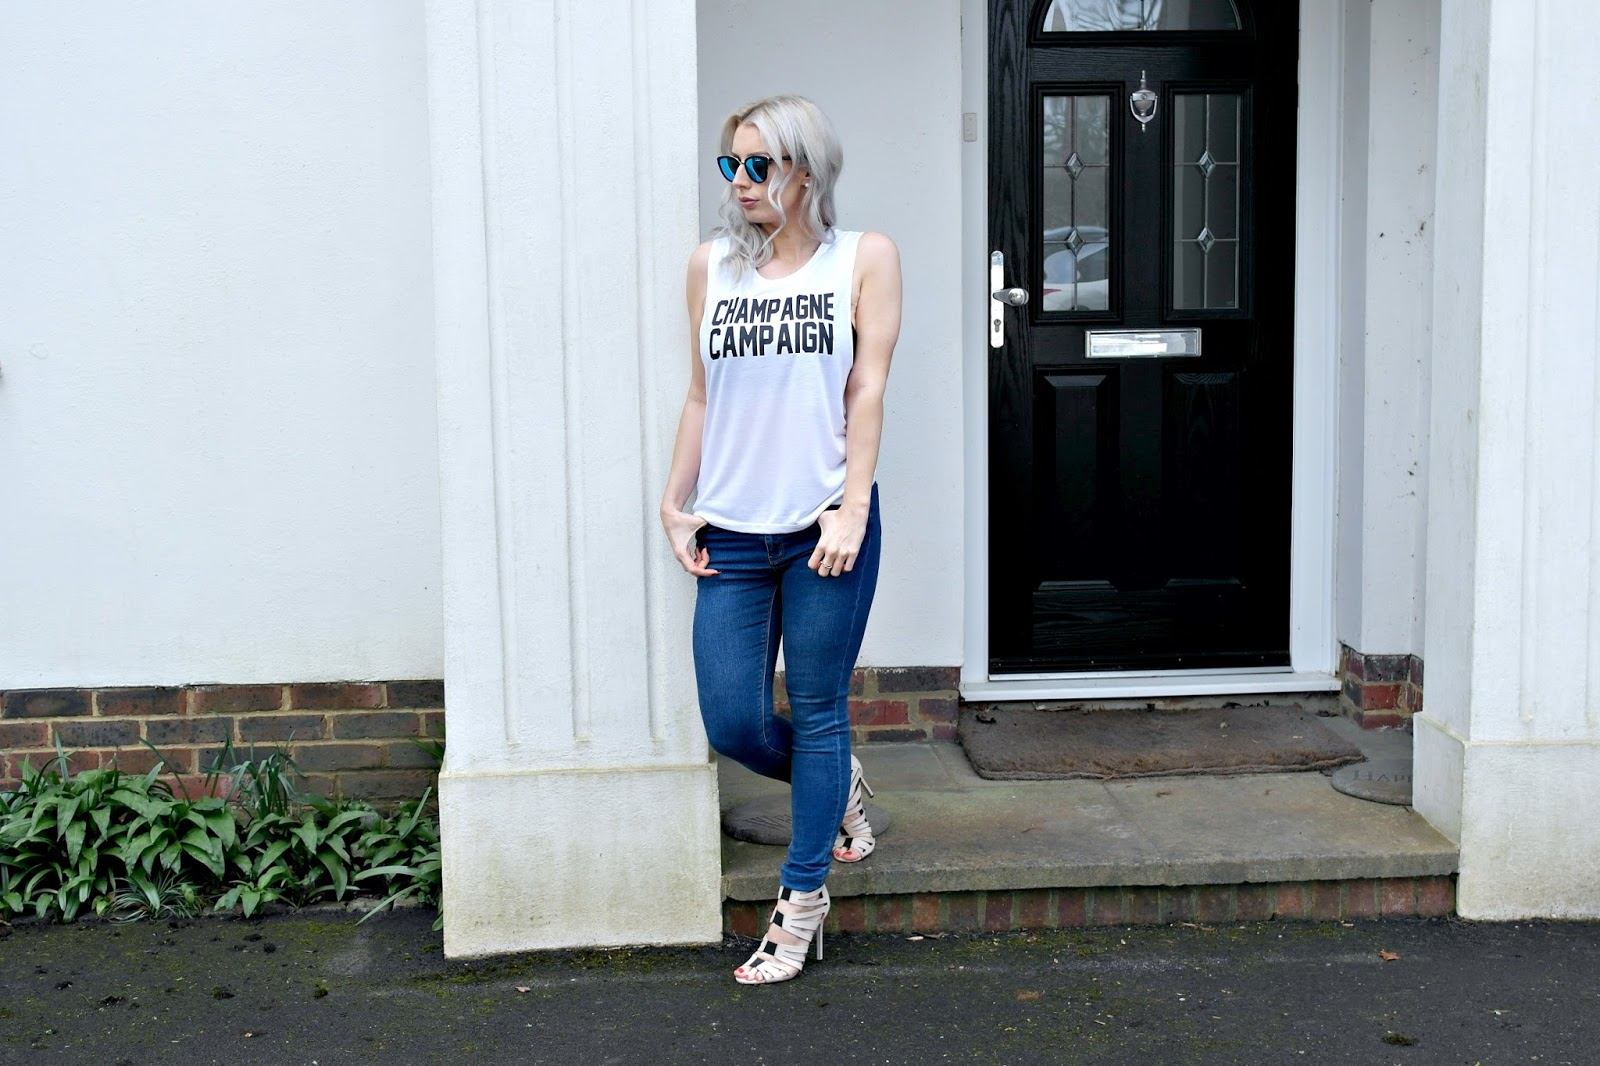 champagne campaign top, t-shirt